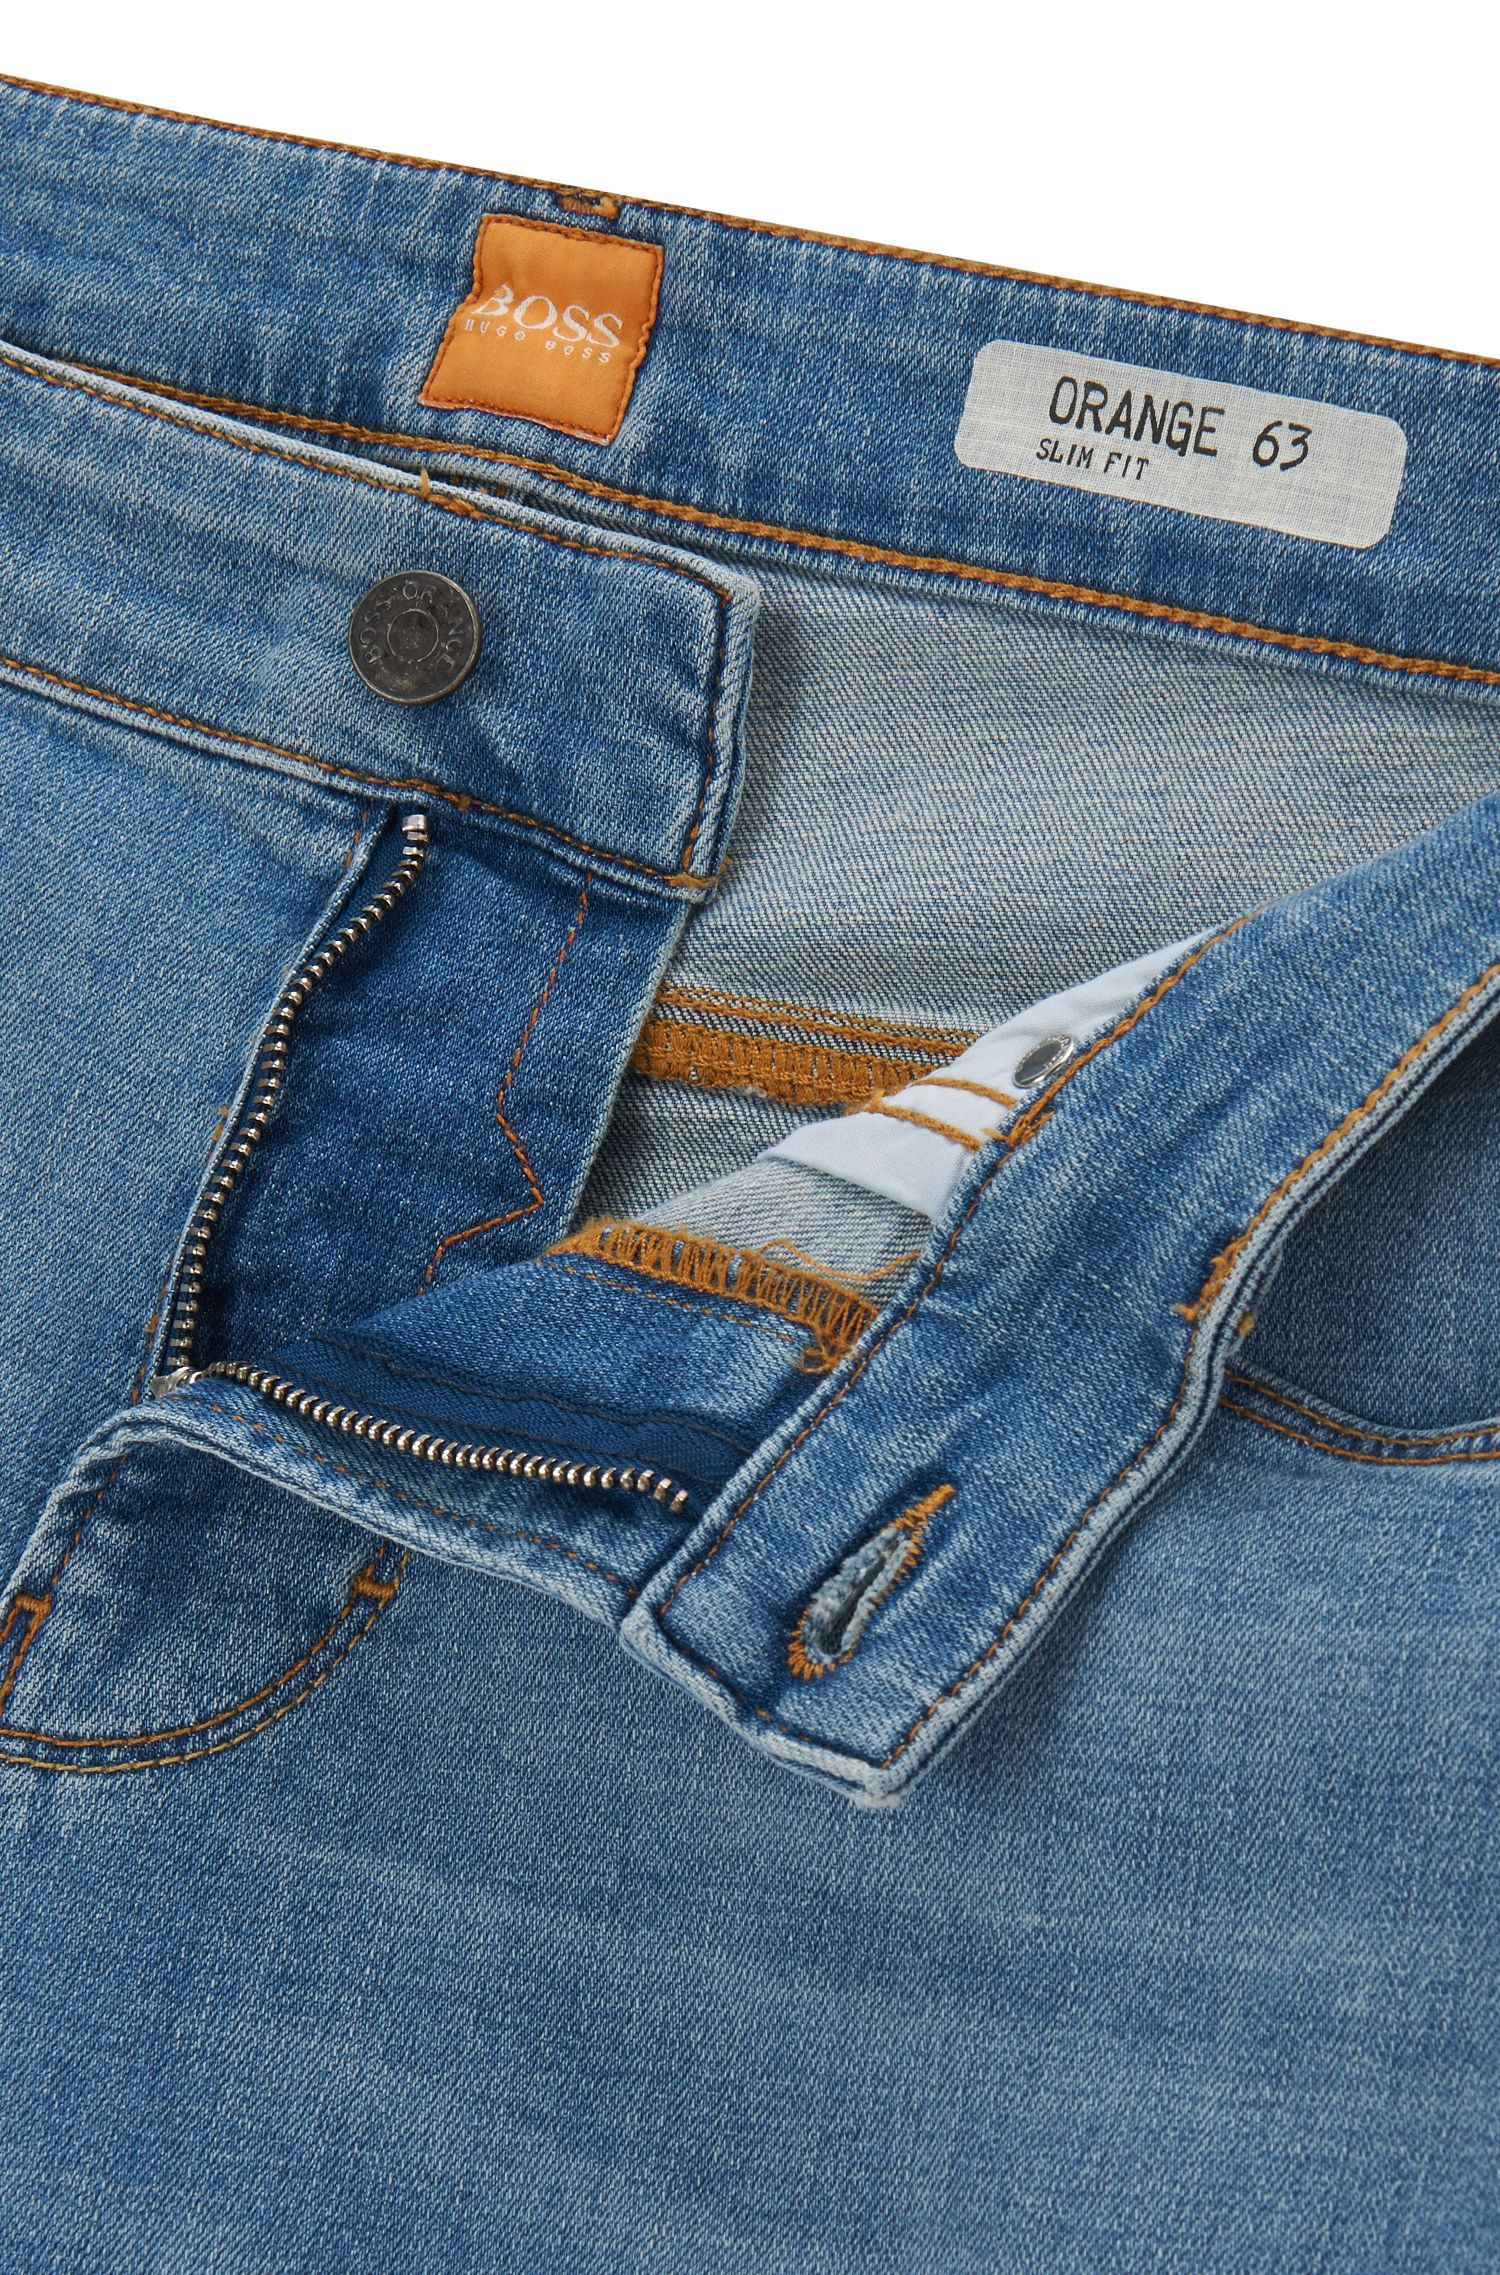 Stretch Cotton Jean, Slim Fit | Orange 63, Turquoise